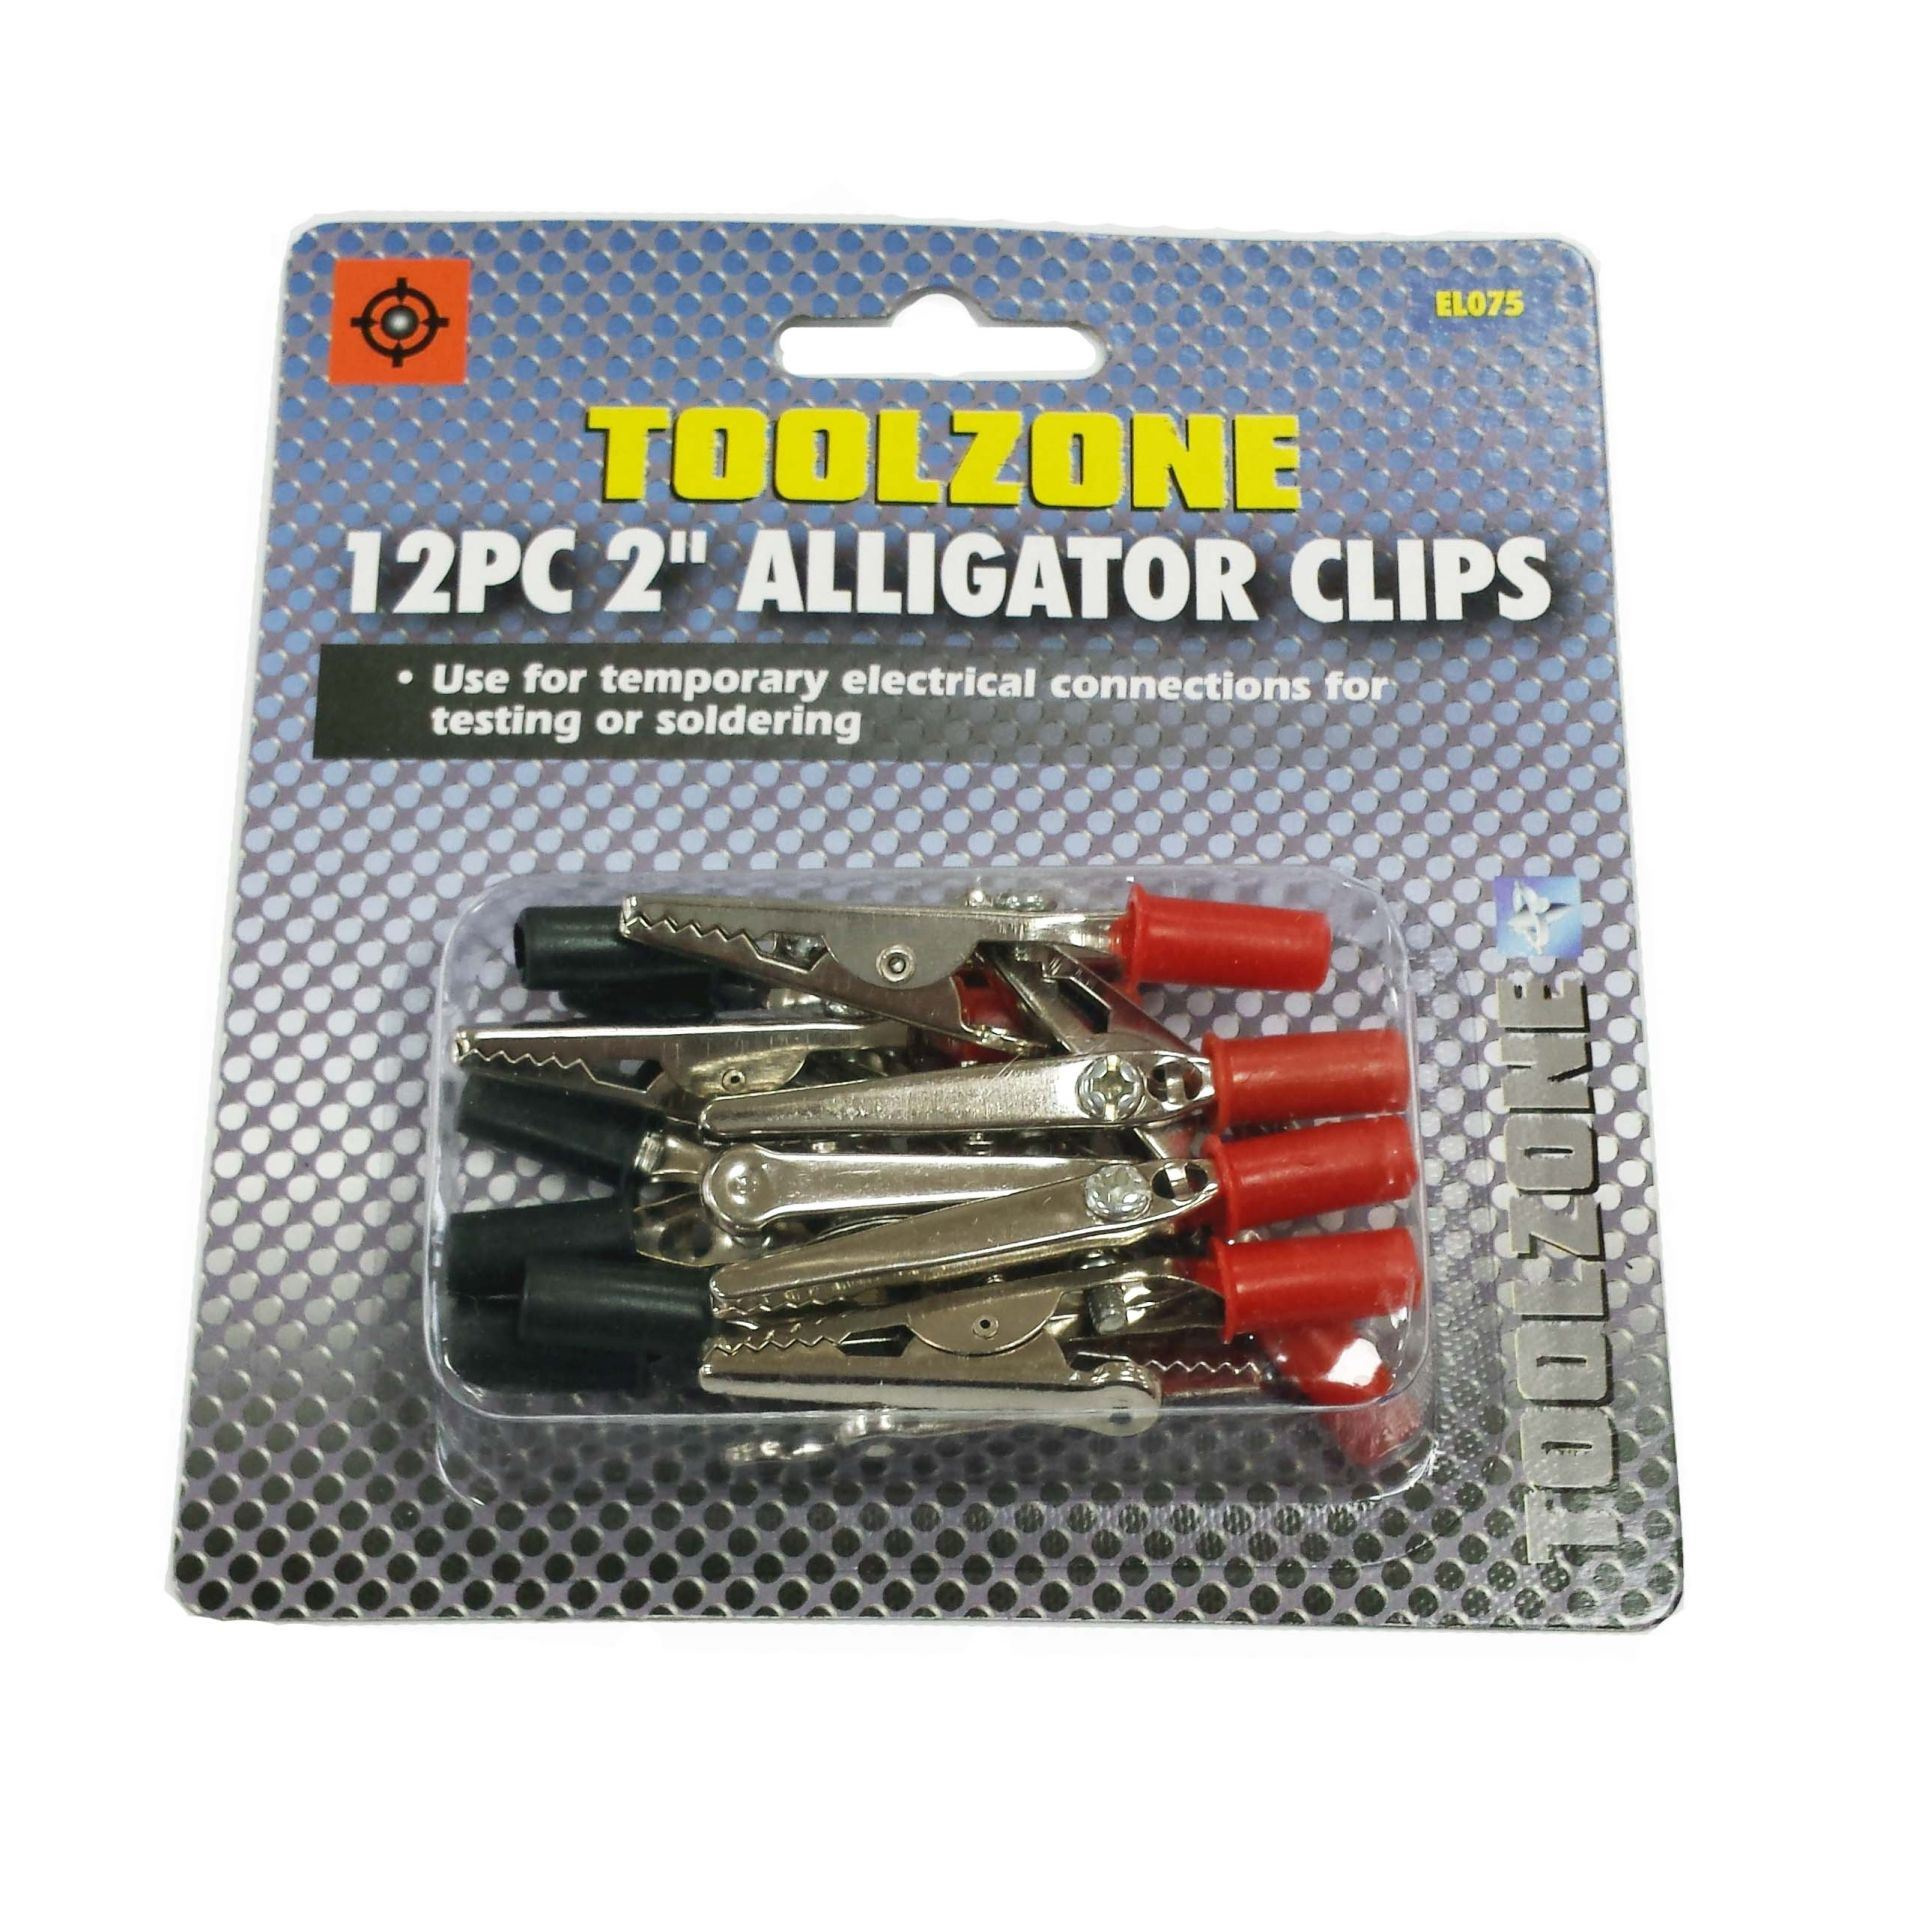 Toolzone 12Pc 2'' Ins Alligator Clips